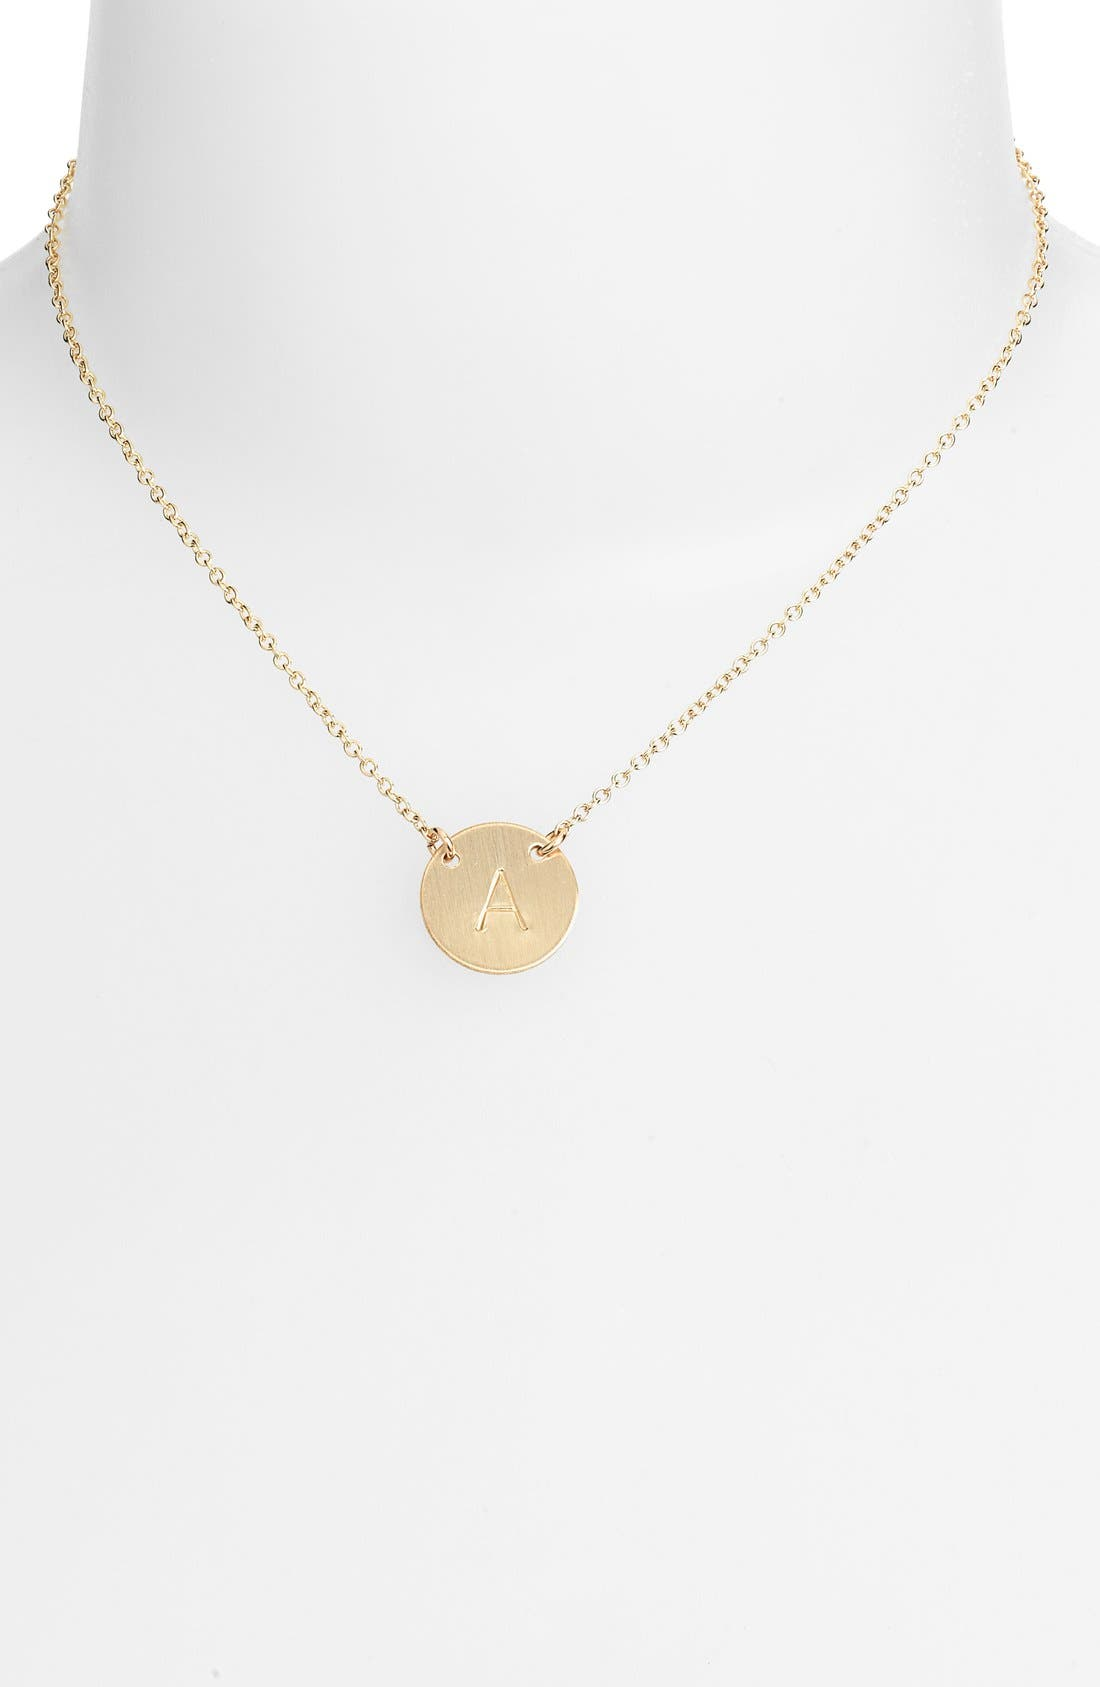 NASHELLE, 14k-Gold Fill Anchored Initial Disc Necklace, Alternate thumbnail 2, color, 14K GOLD FILL A